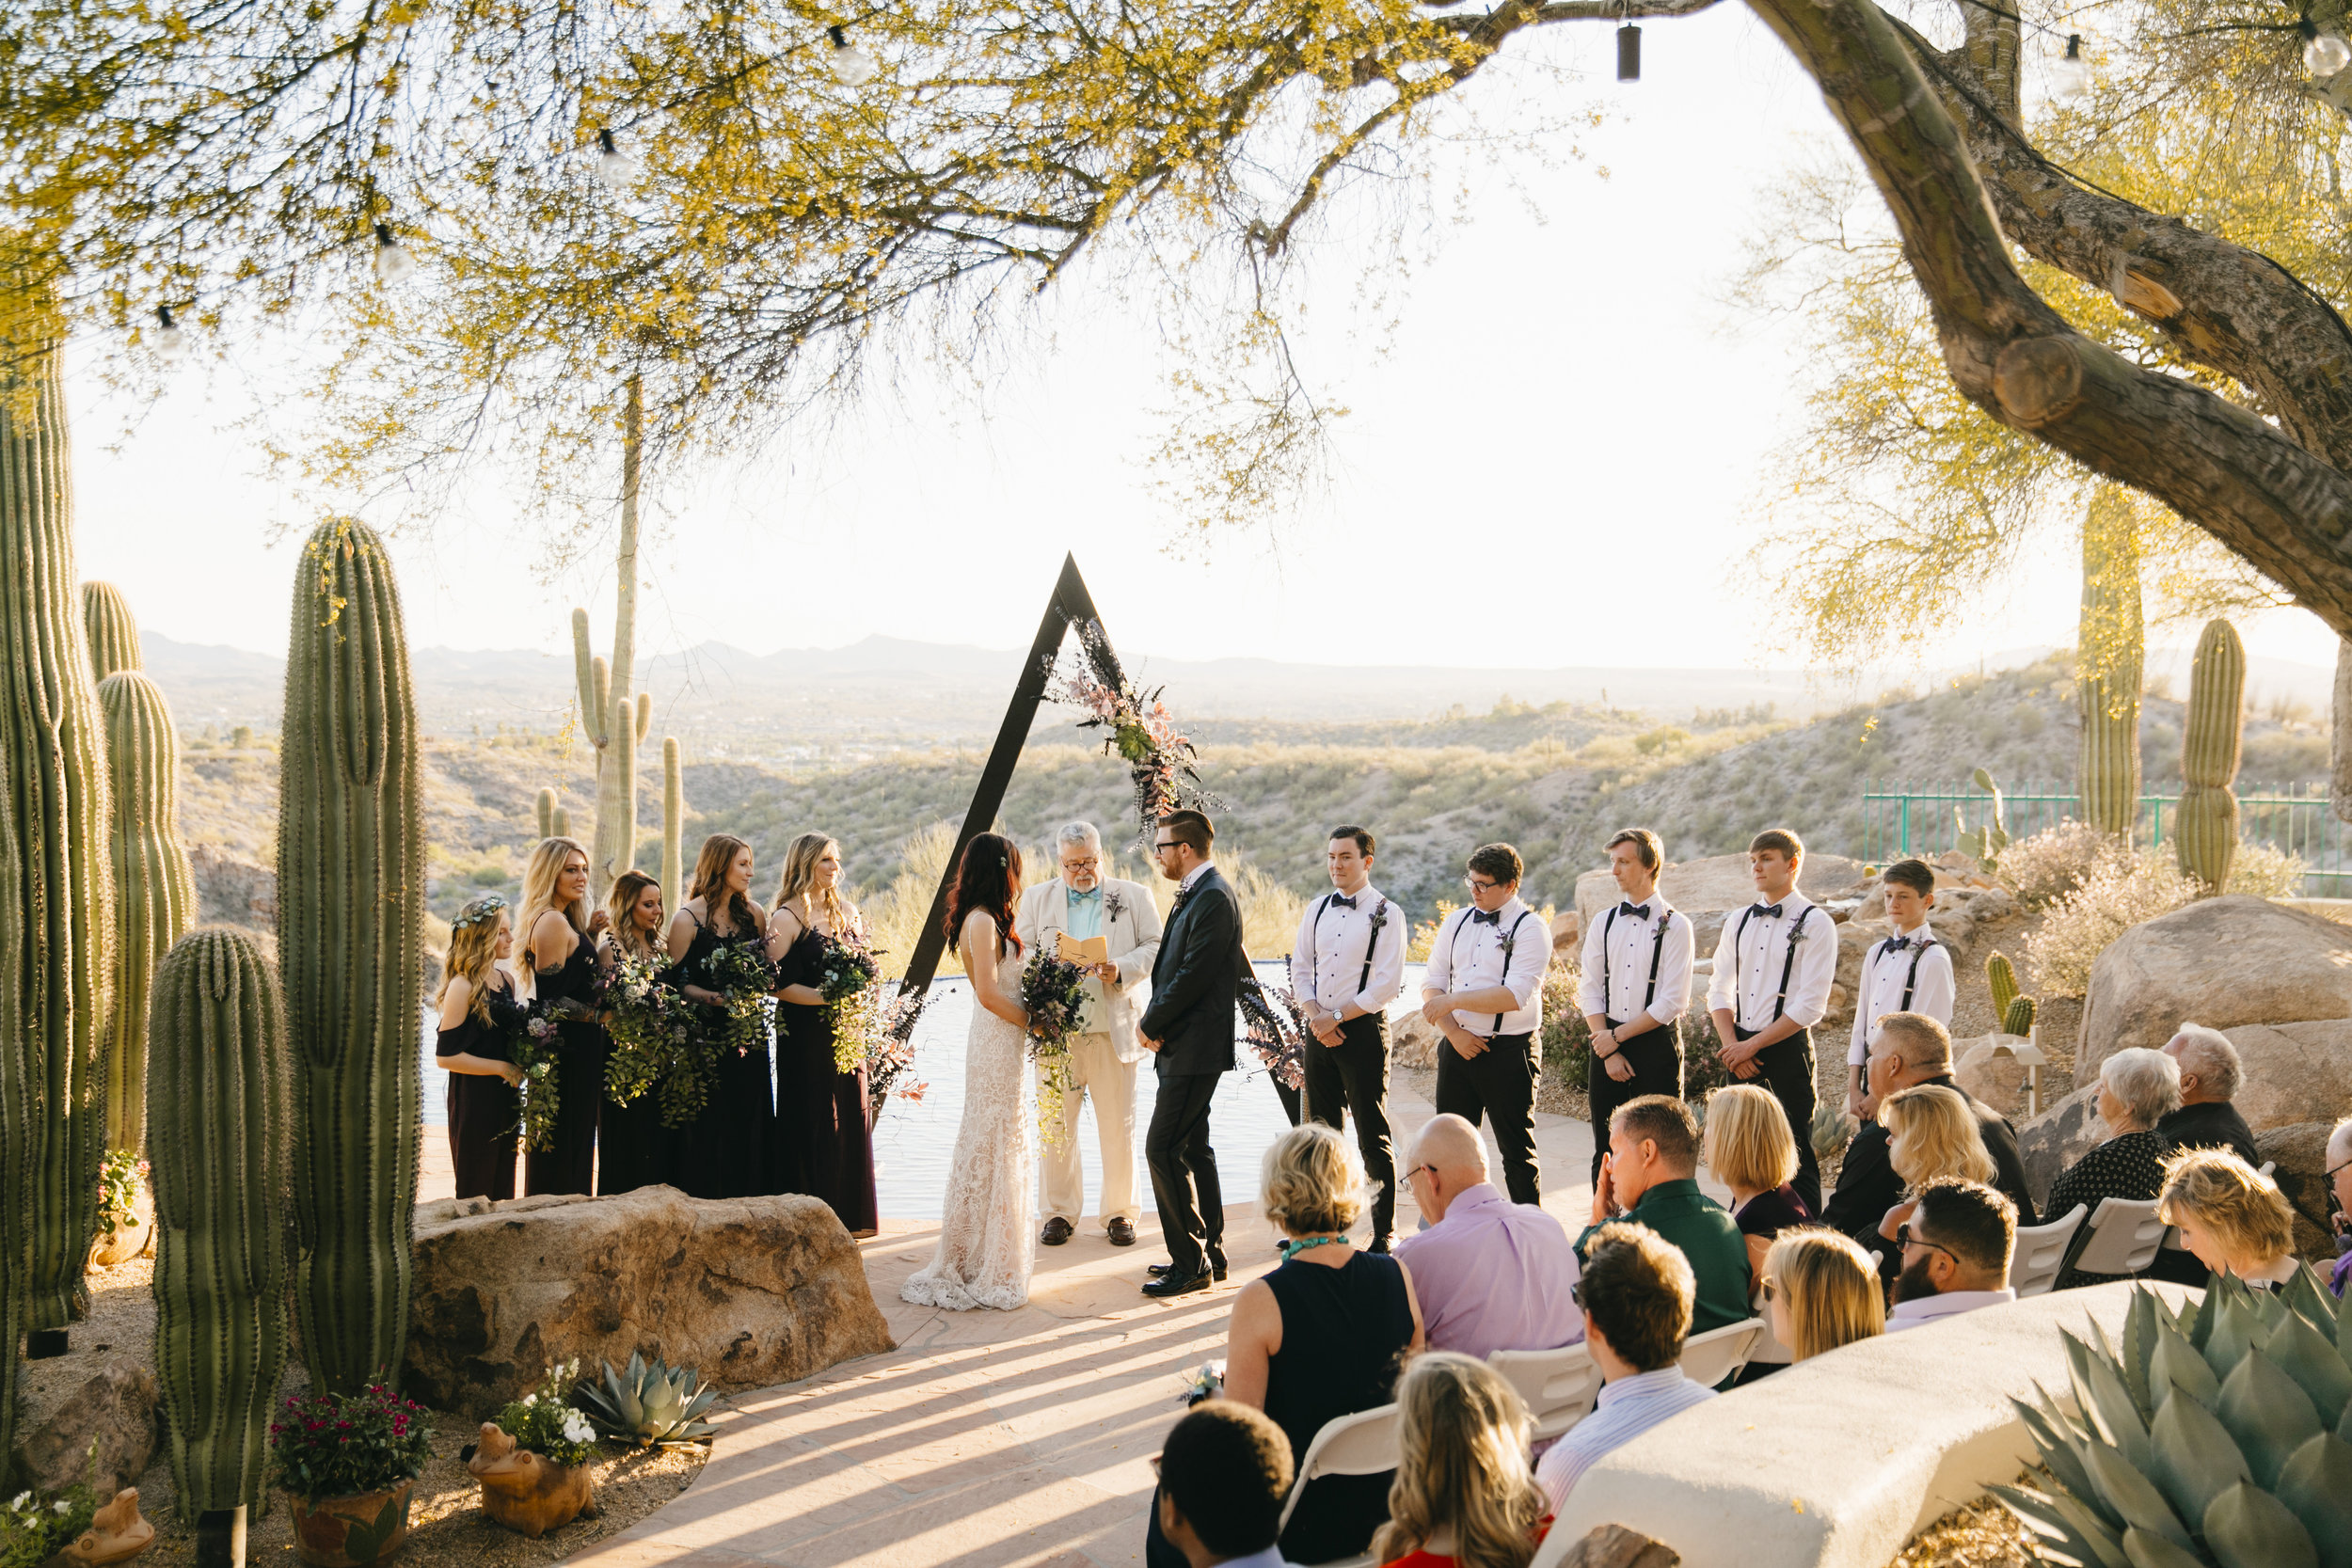 An intimate desert wedding ceremony takes place at sunset by Sedona Destination Elopement Photographers Colby and Jess.